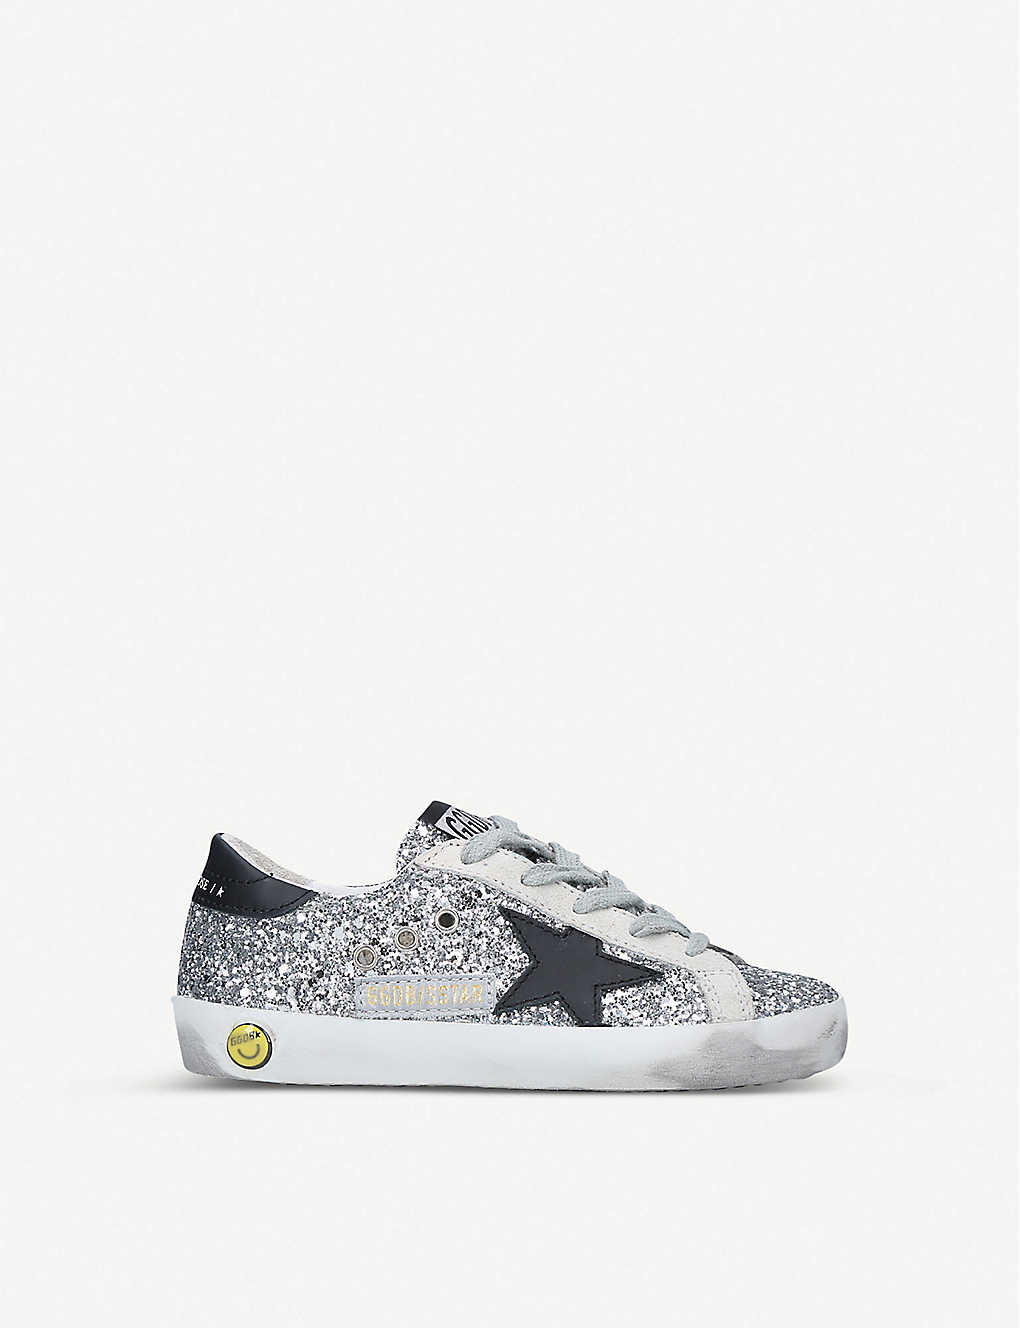 GOLDEN GOOSE: Superstar B45 distressed leather and glitter trainers 6-8 years